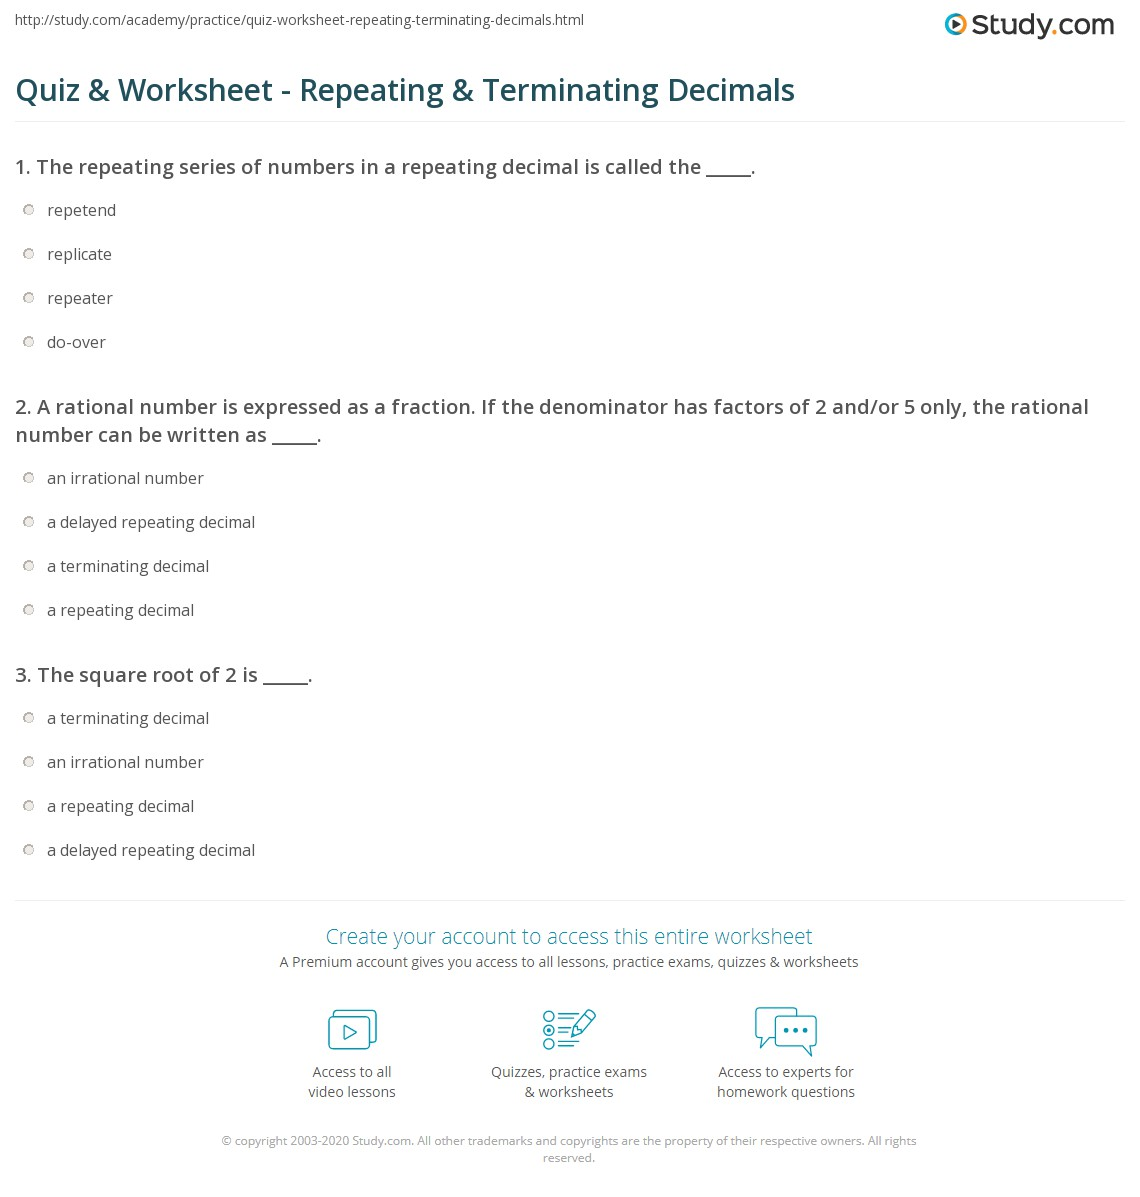 Terminating And Repeating Decimals Worksheet - Bluegreenish